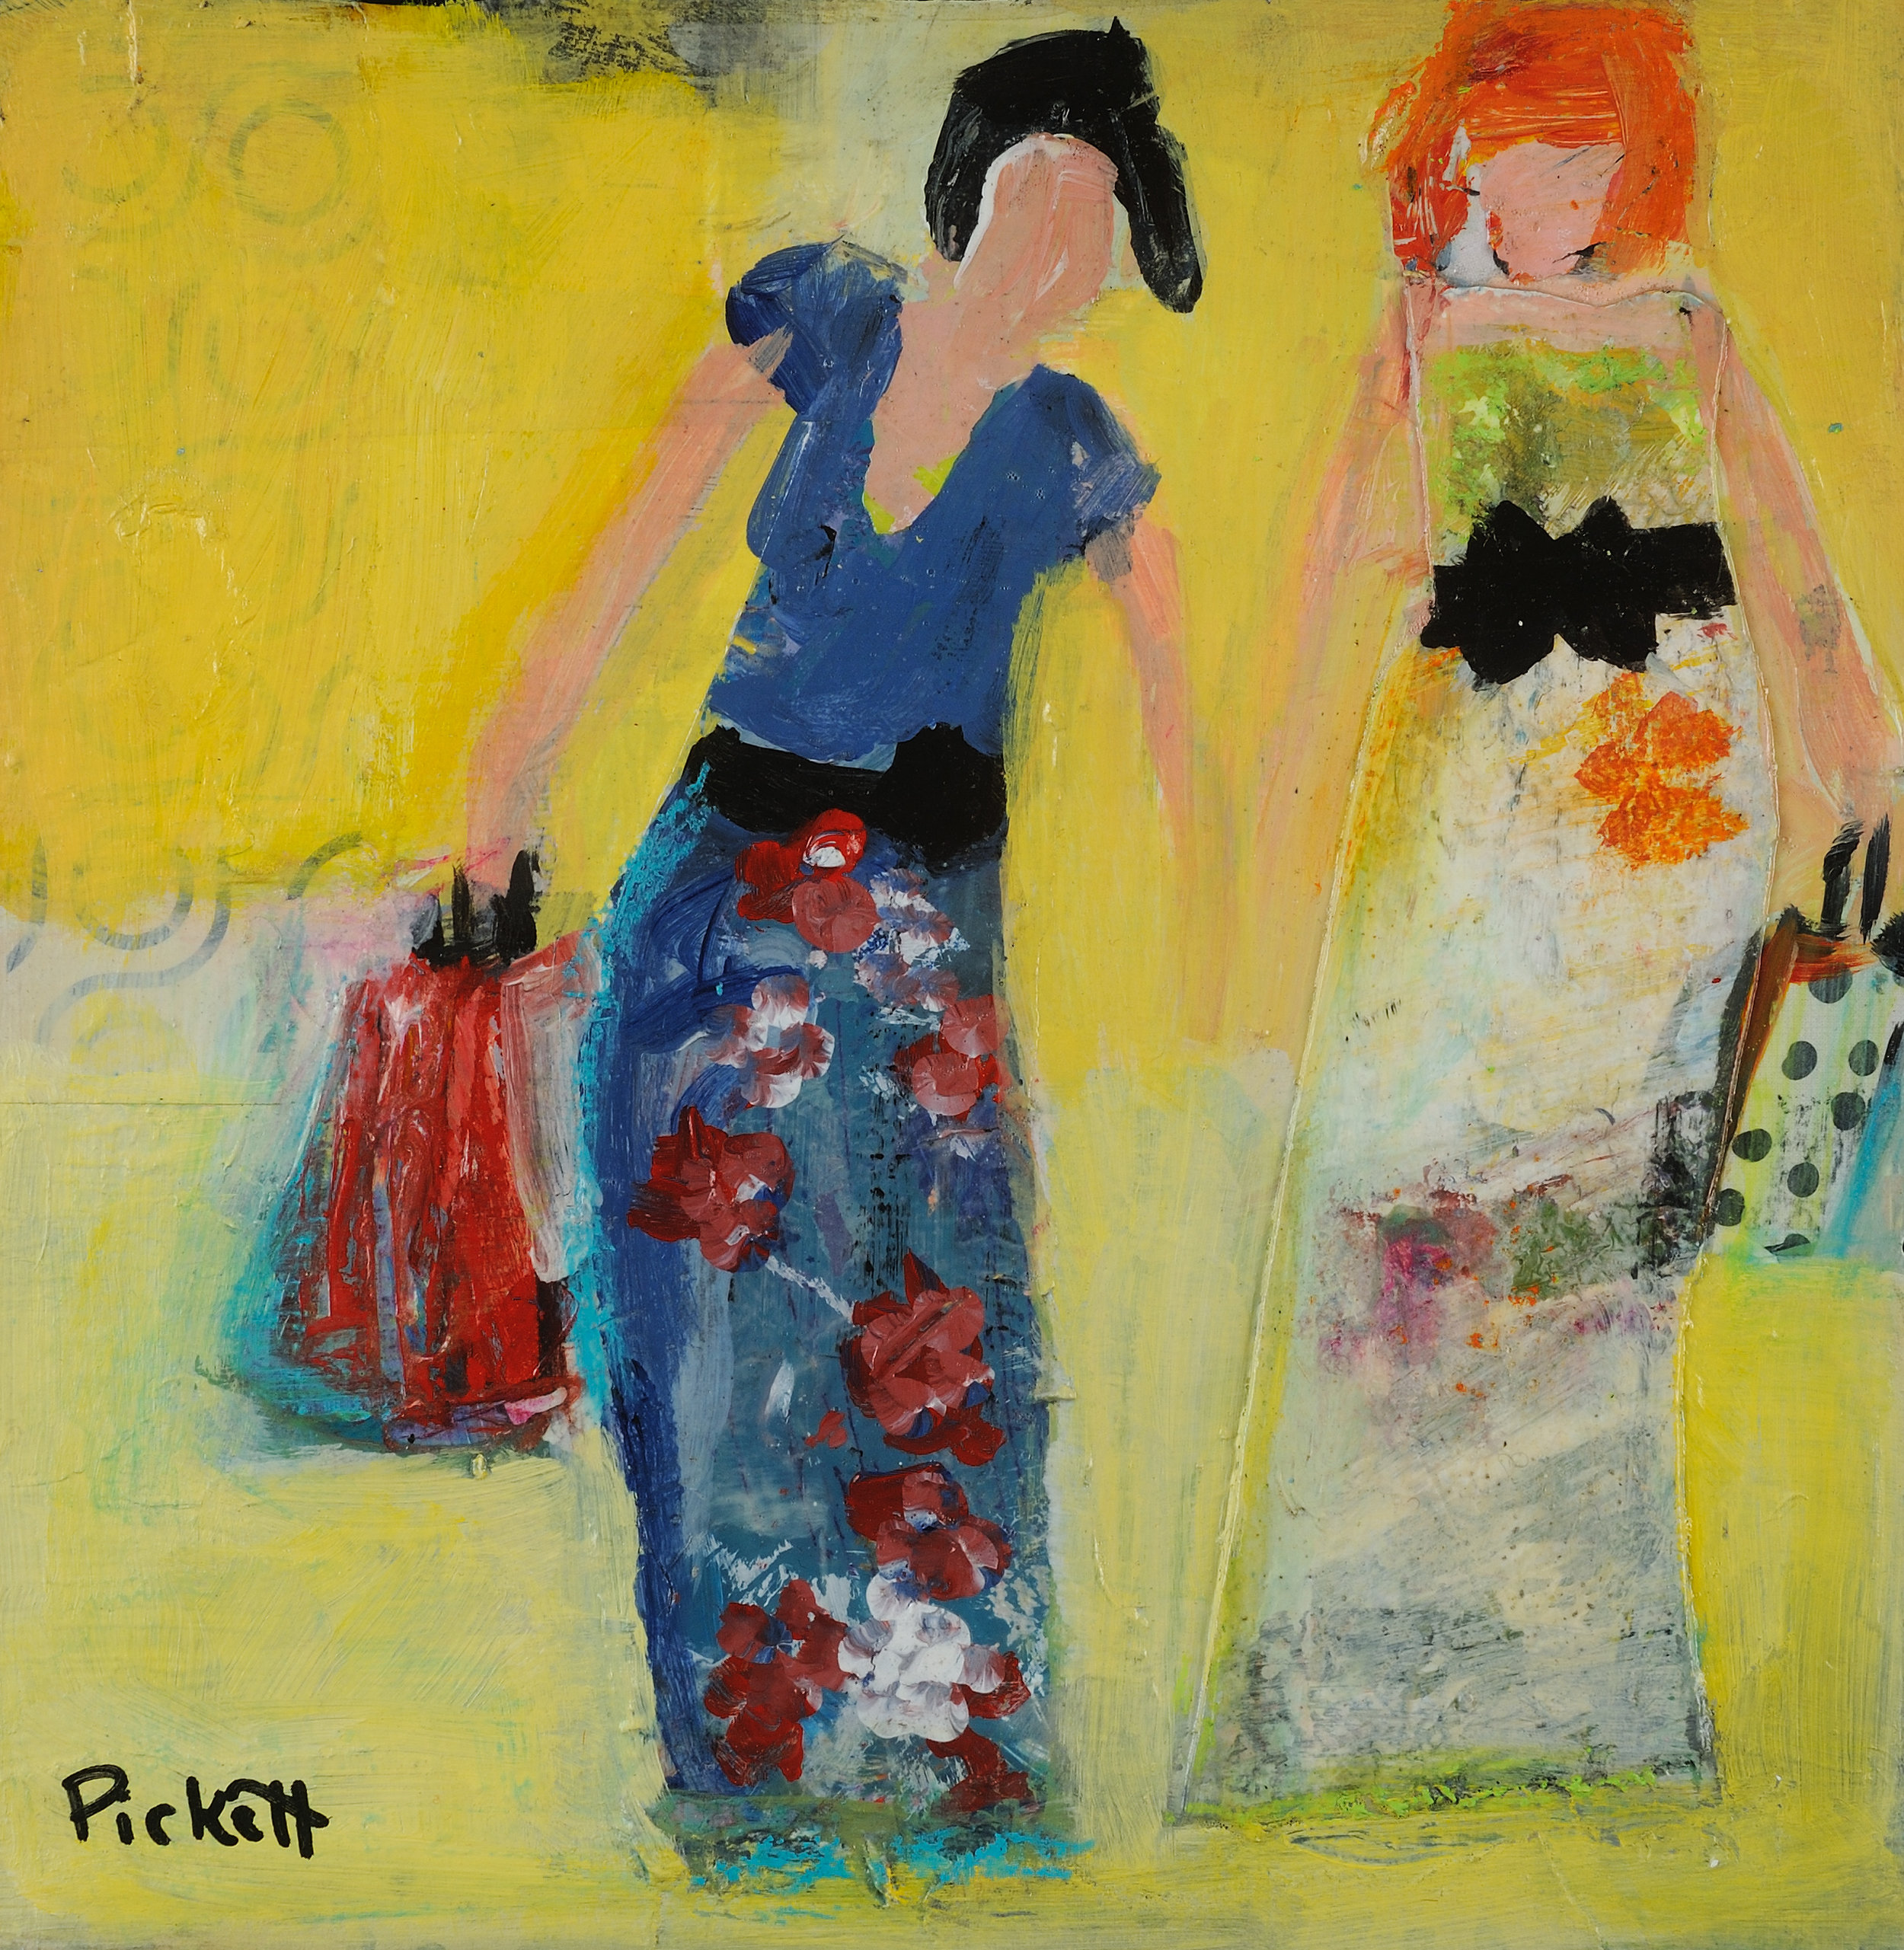 Foundry Gallery-Ann Pickett-Women Who Lunch-8x8-Acrylic with collage-2017-$200.jpg